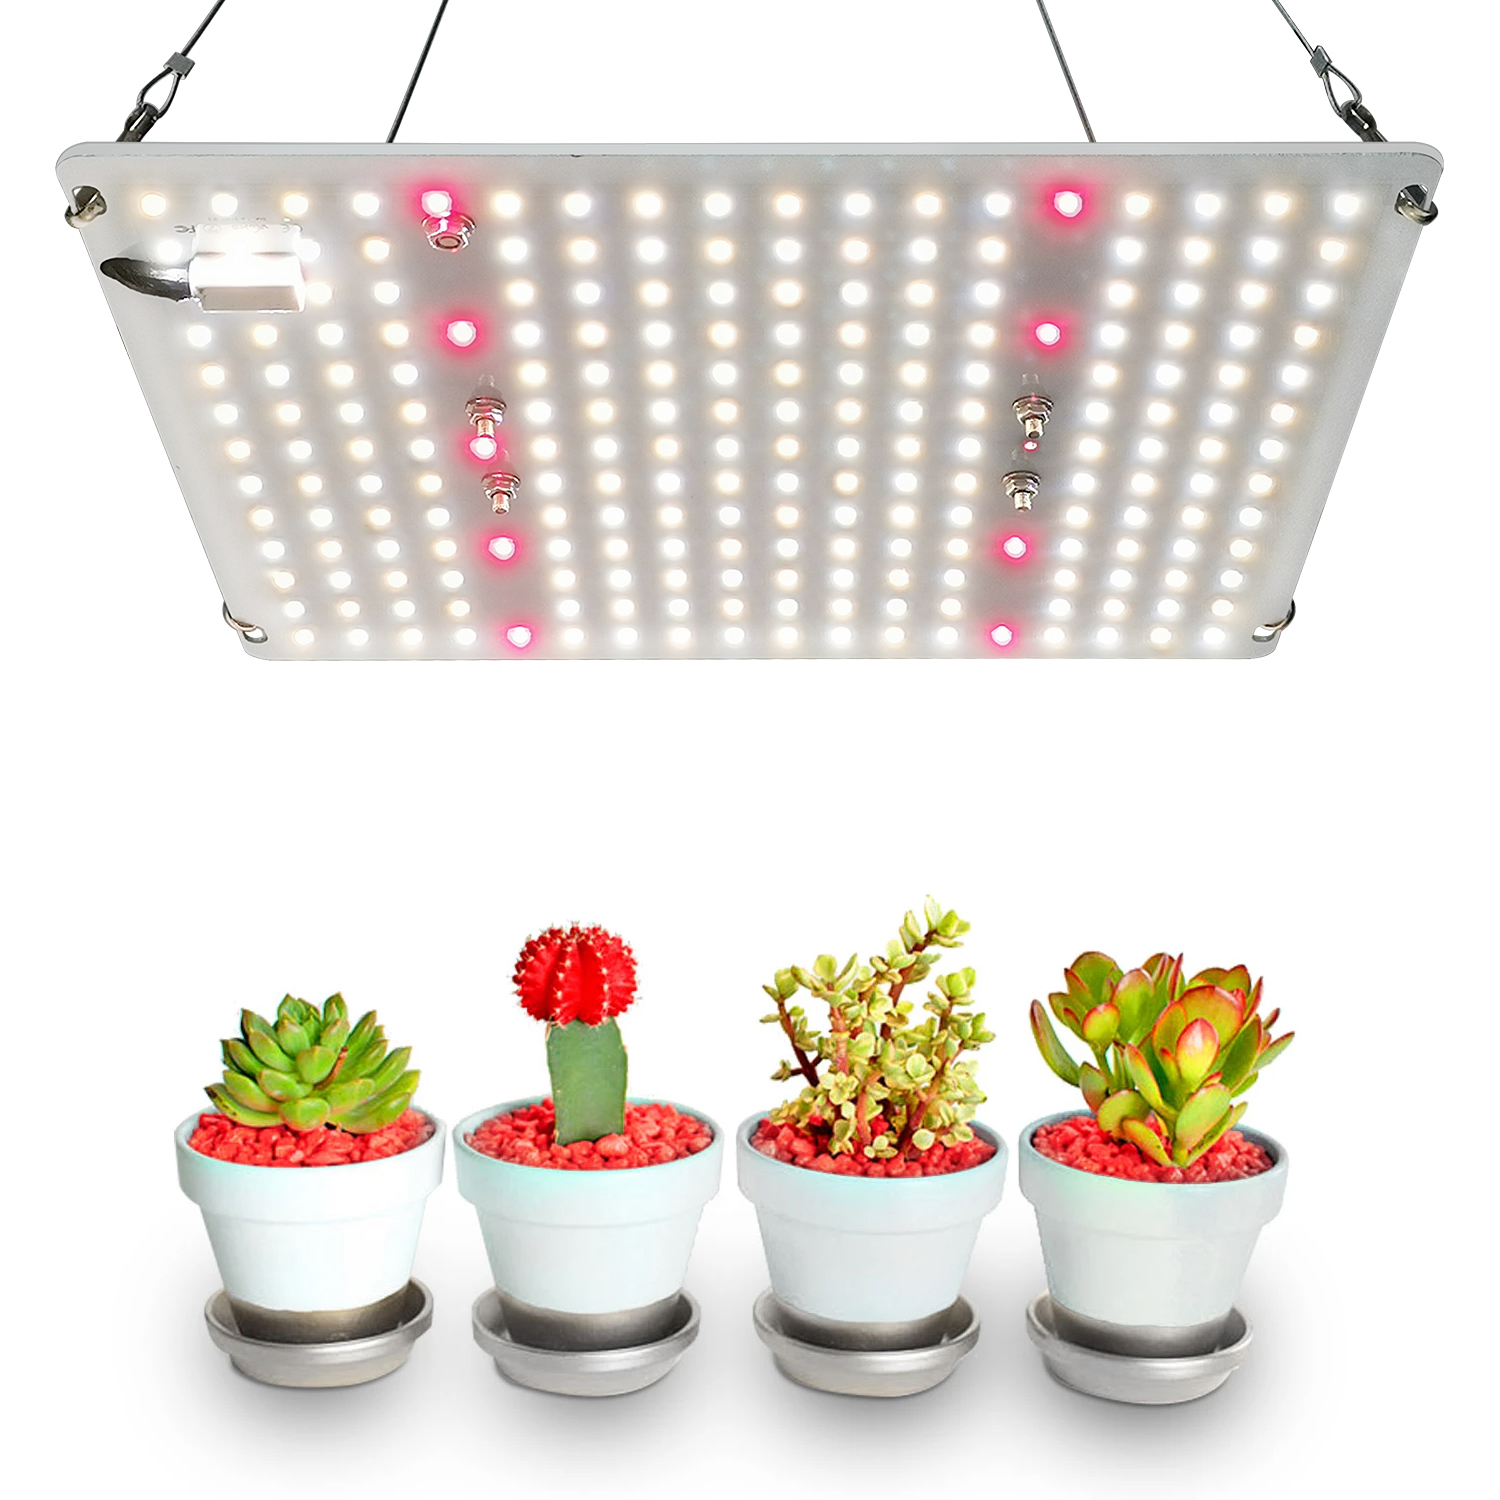 Samsung diodes SF1000 spider sf <strong>1000</strong> LED plant lamp farmer sf-<strong>1000</strong> sf <strong>1000</strong> led Grow Light 100w 100 <strong>w</strong> 1000w